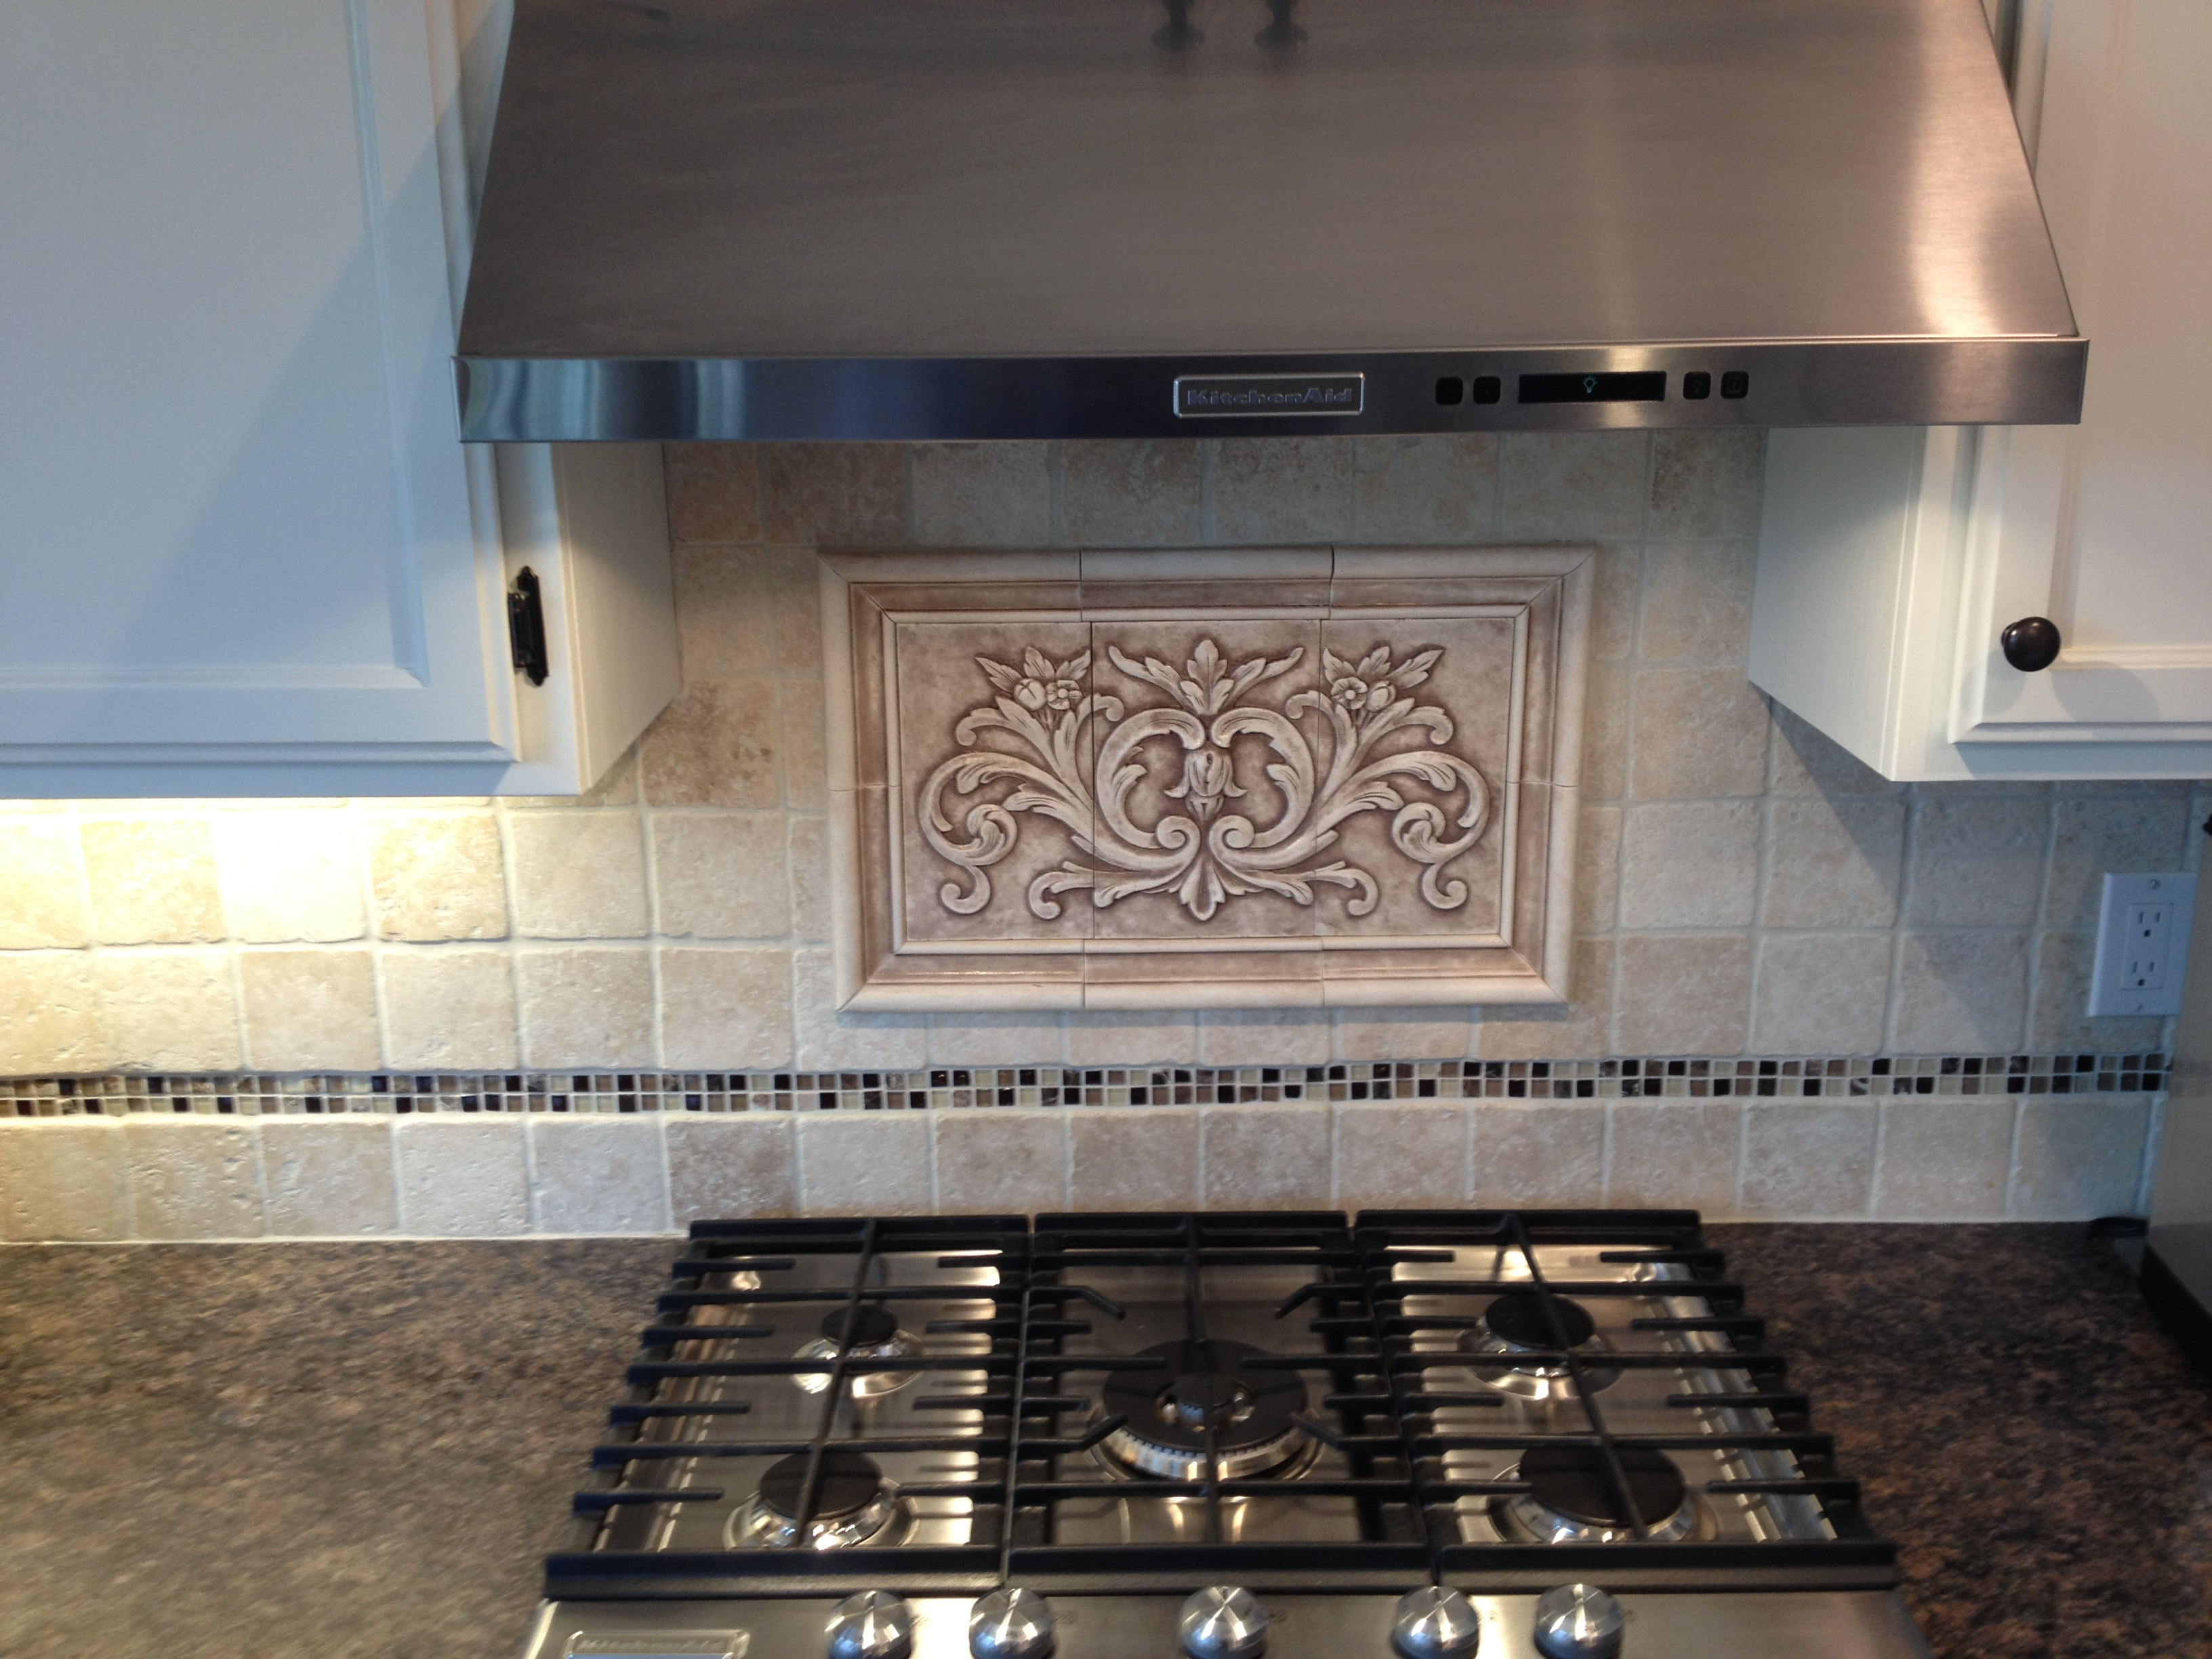 Hand pressed floral tiles installed in kitchen backsplash f pf photo dailygadgetfo Gallery